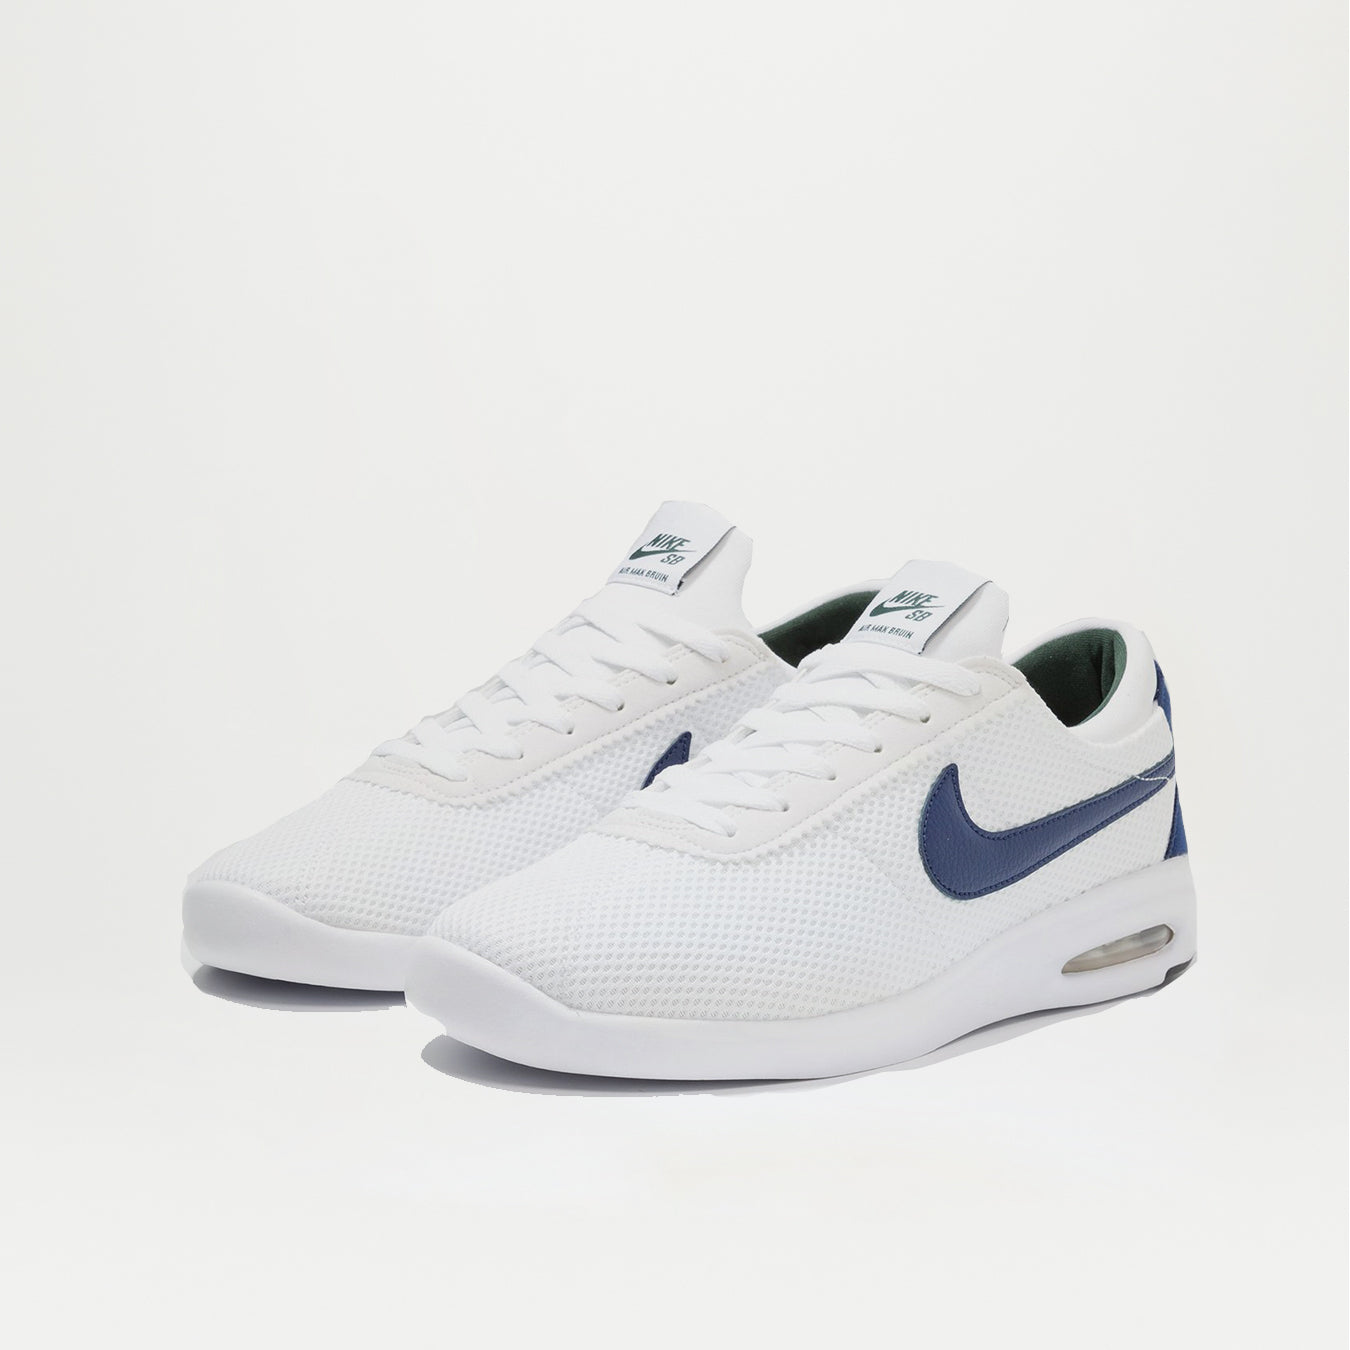 Nike SB Air Max Bruin VPR TXT (White Blue Void-Midnight Green ... 8490cdf5c